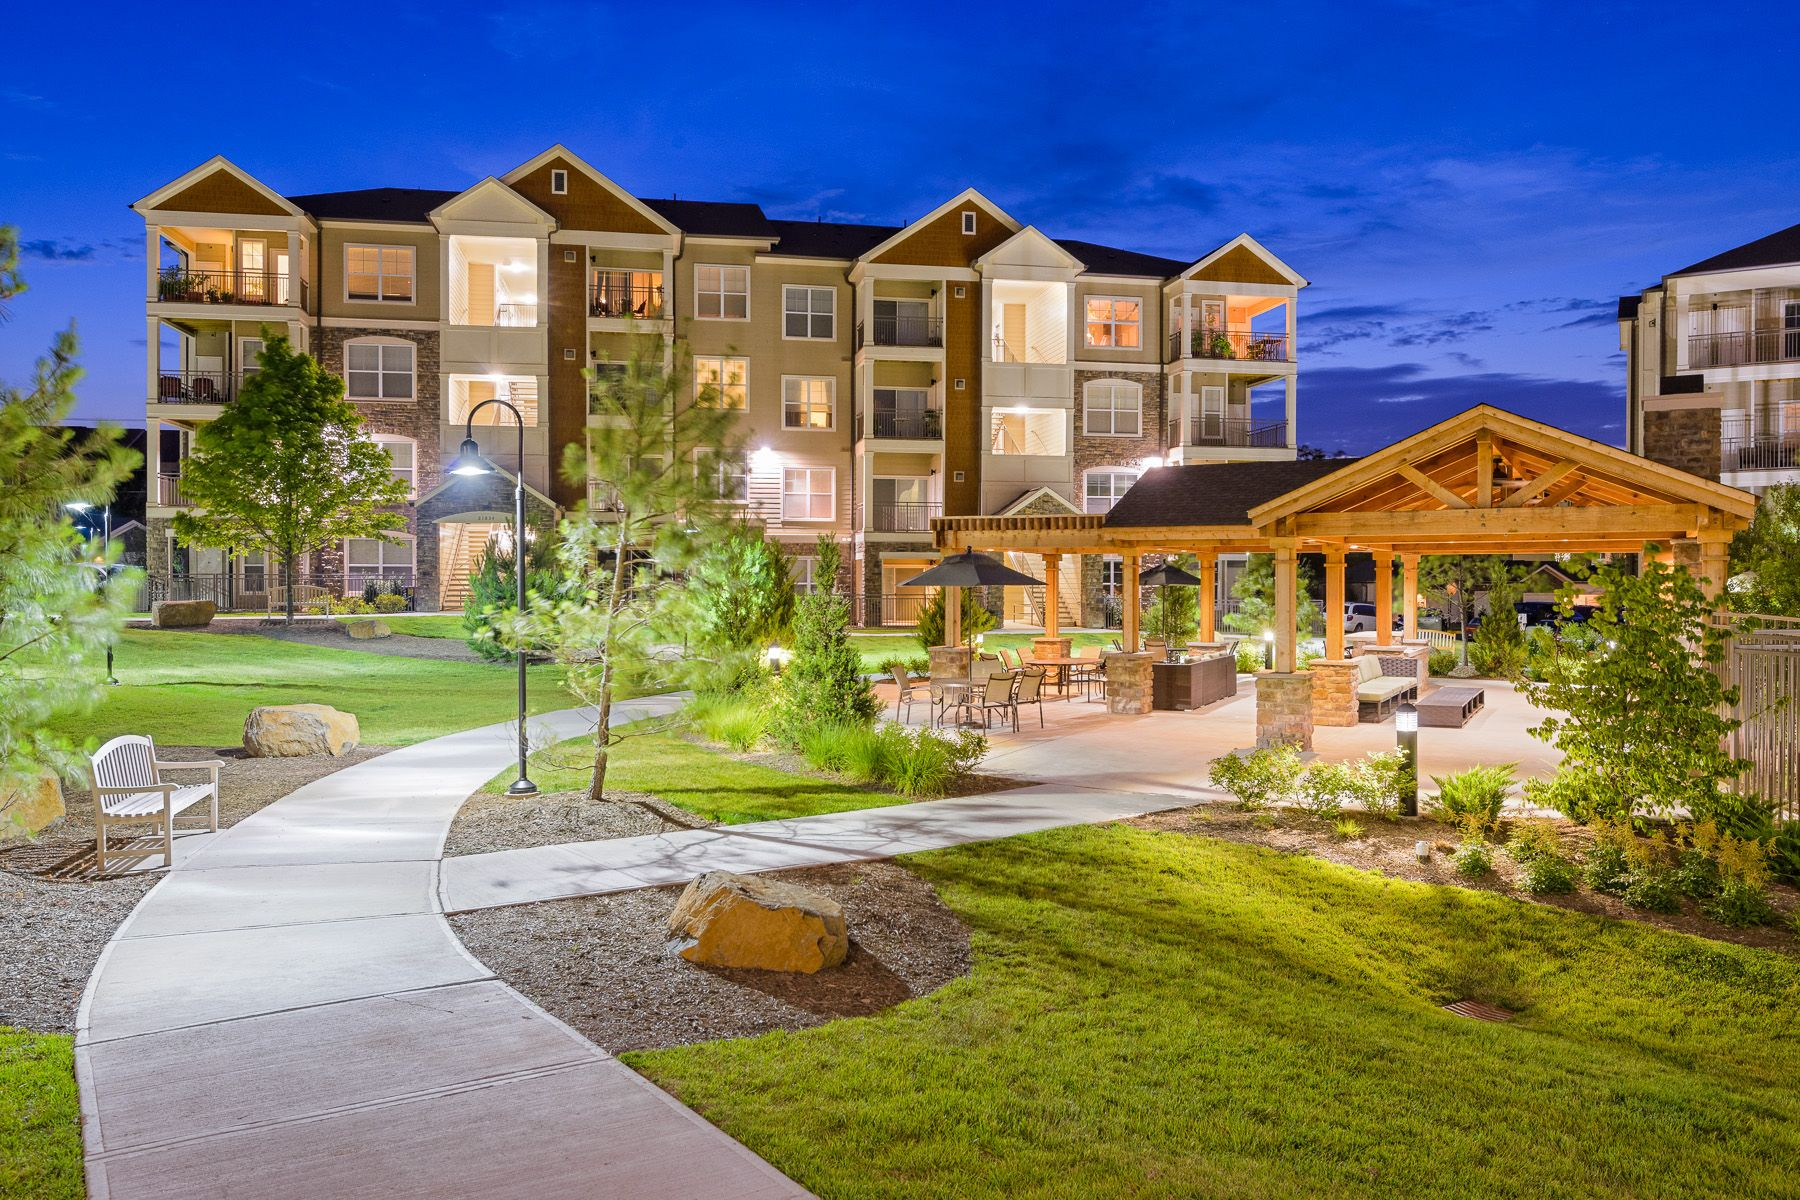 Take A Moonlit Stroll Or Evening Jog At Atley At The Greenway In Ashburn Va Rental Apartments House Styles Mansions